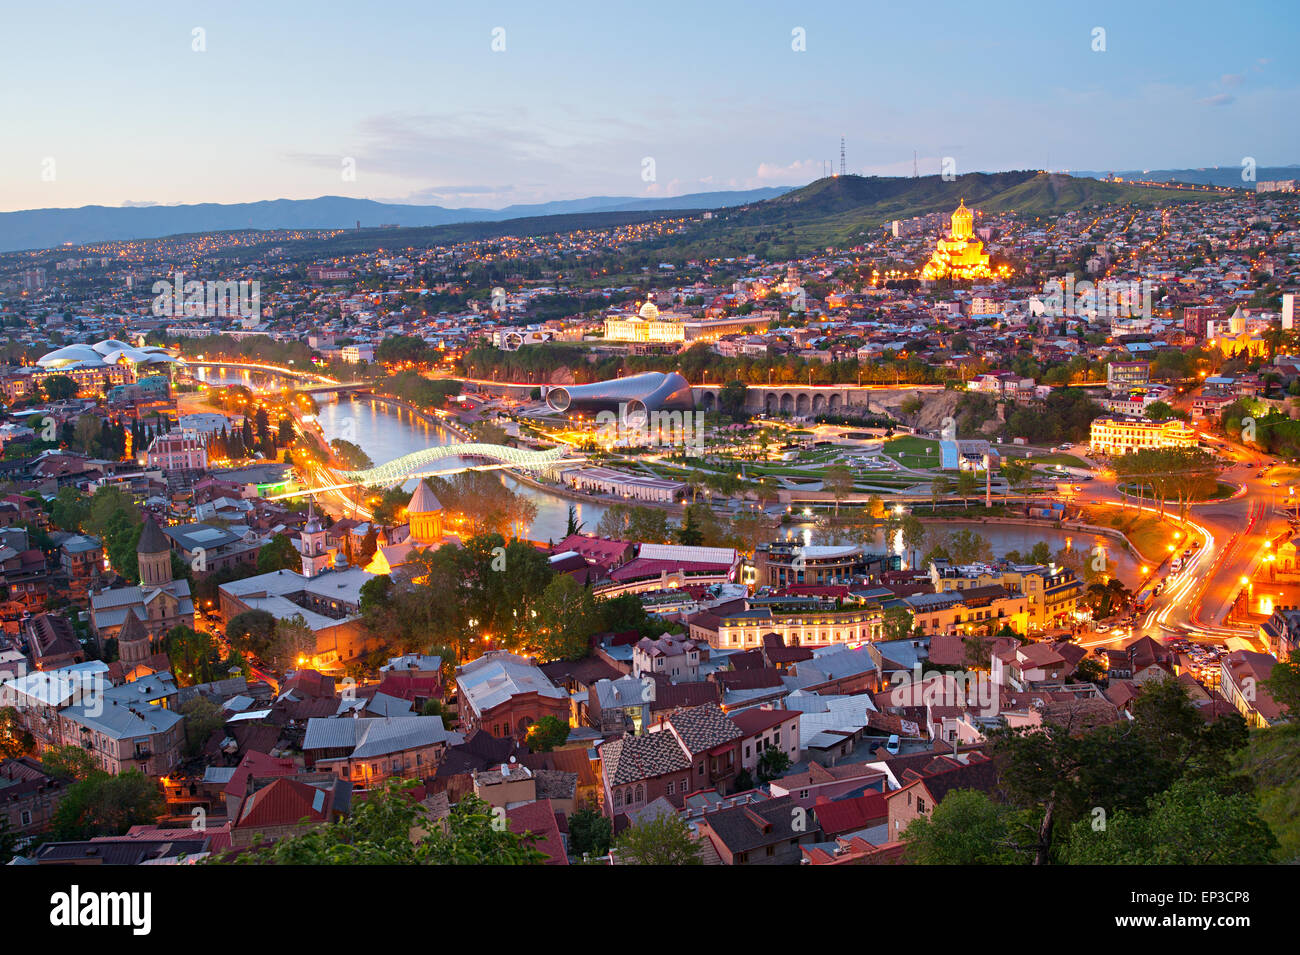 Skyline of Tbilisi from the viewpoint. Georgia Stock Photo